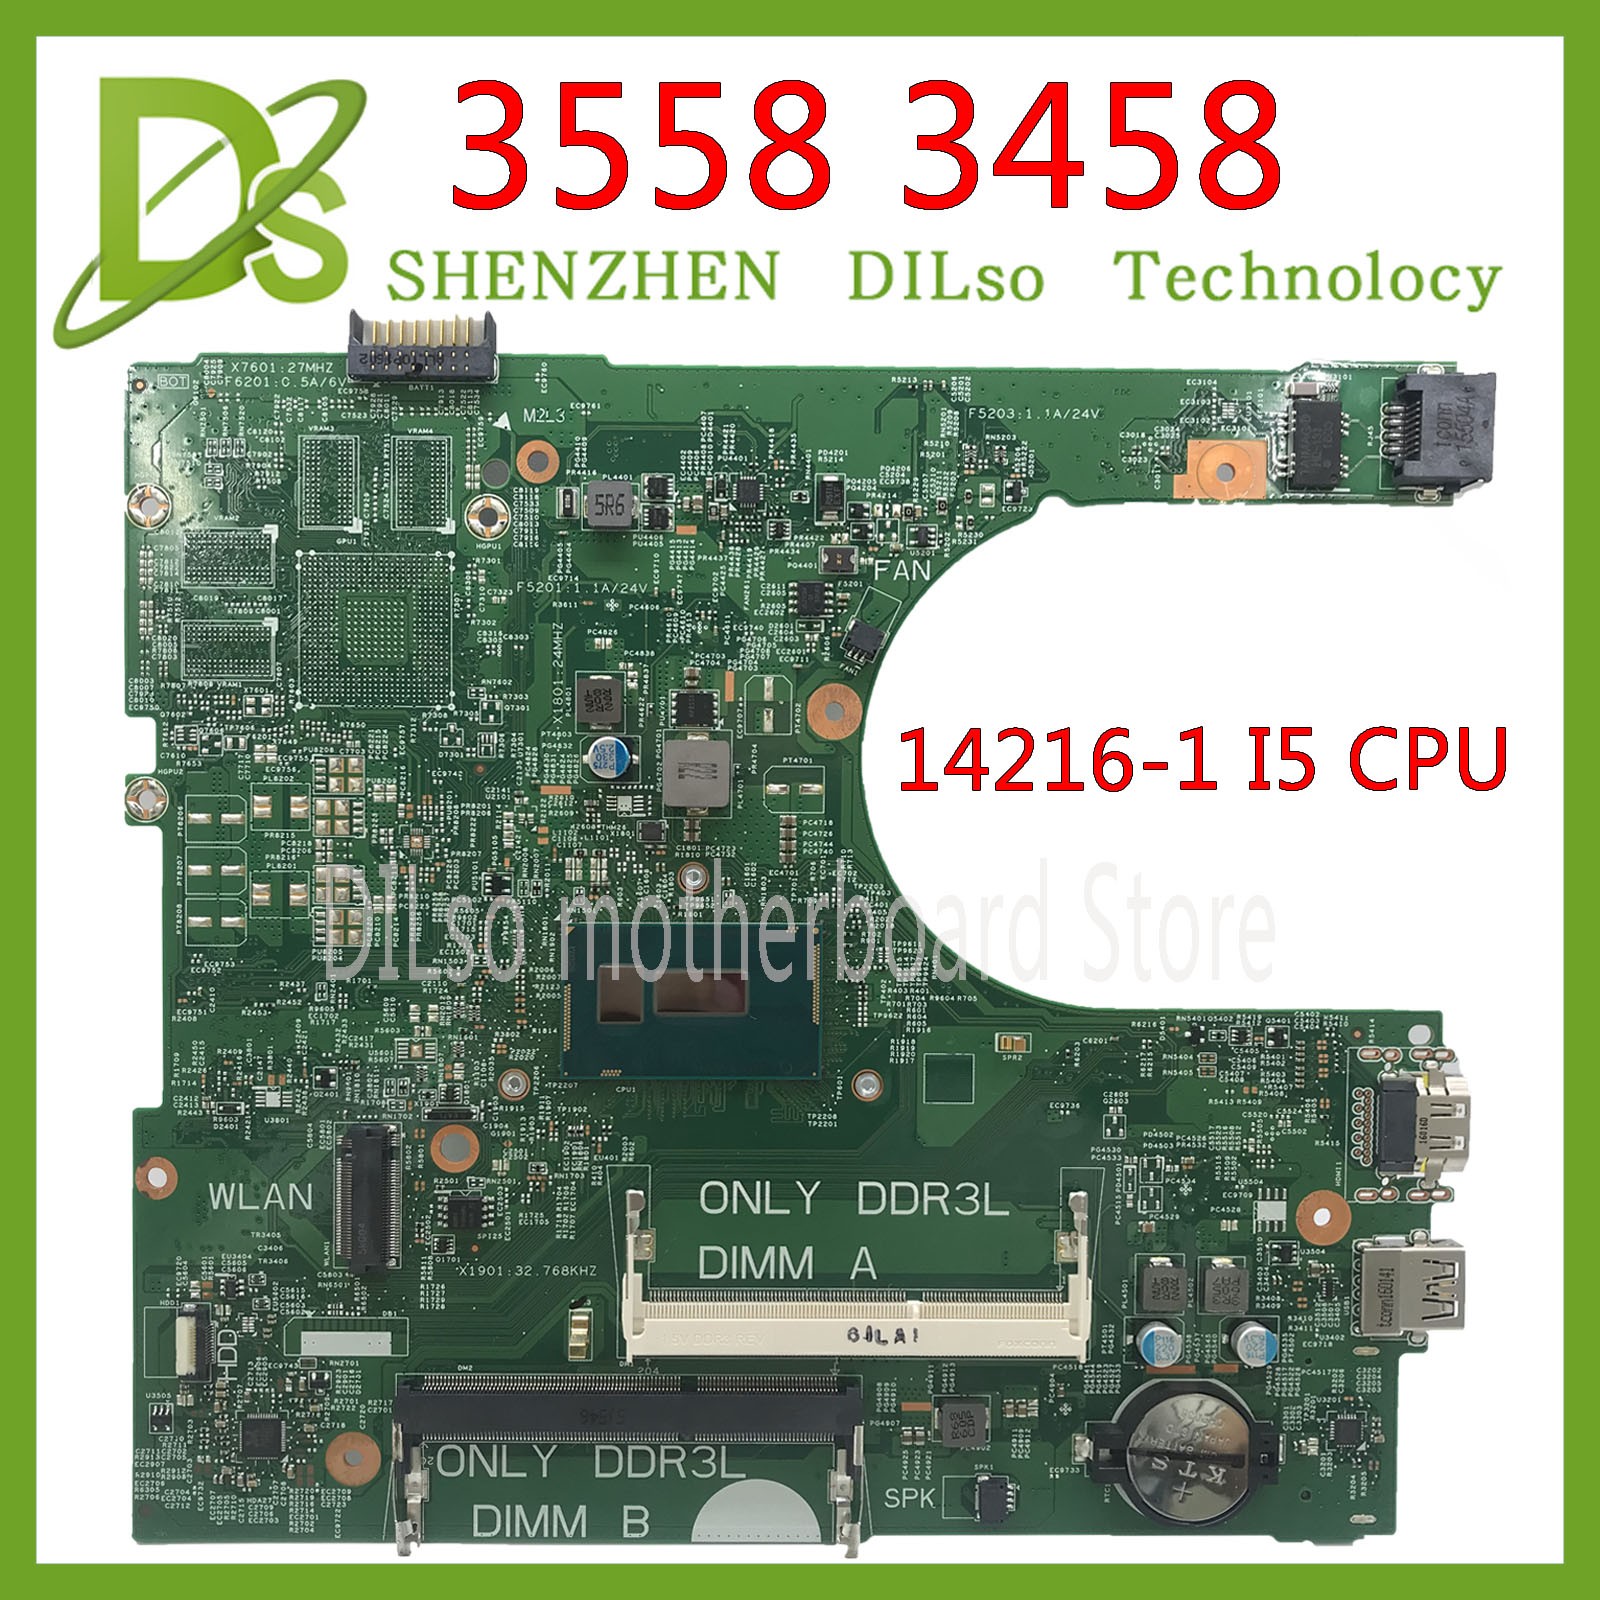 KEFU 14216-1 CN-0CW4DH  For Dell Inspiron 3558 3458 Motherboard I5 Cpu 14216-1 PWB:1XVKN REV:A00 Original Test 100% Work